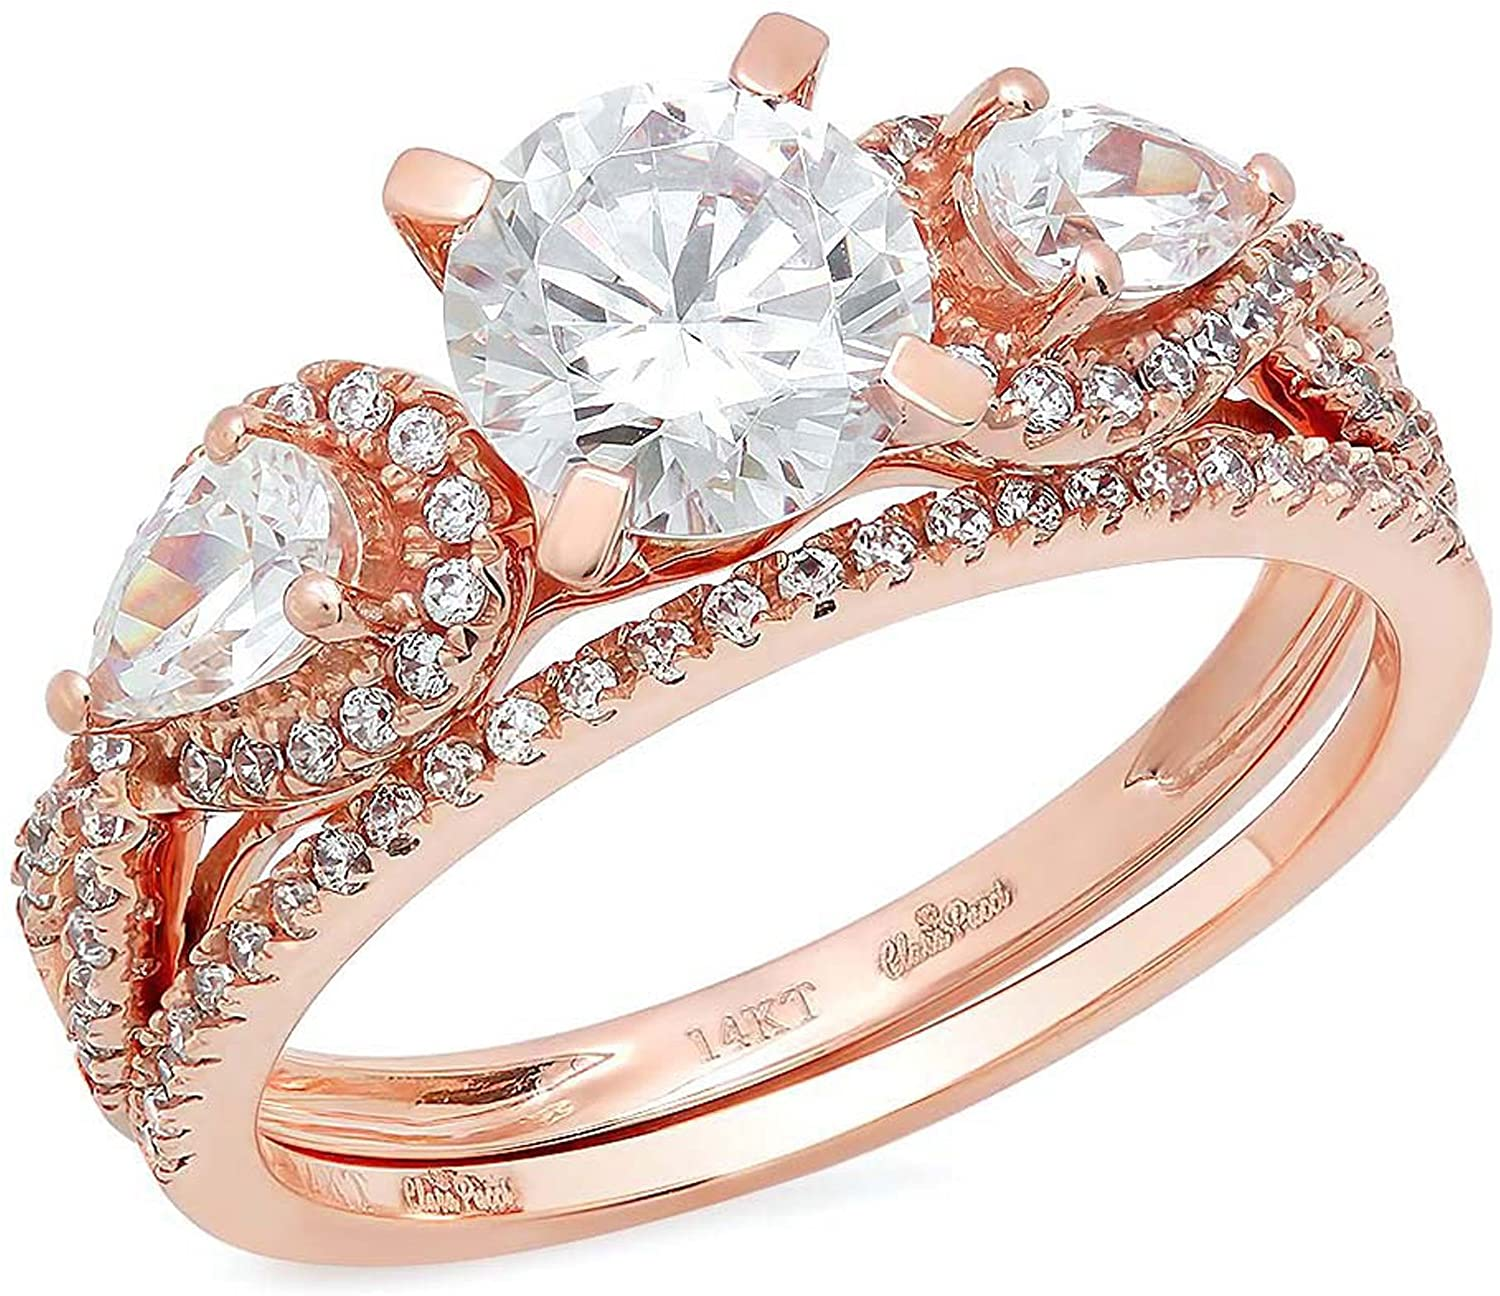 2.2 Ct Round Pear Cut Pave Halo Engagement Promise Wedding Bridal Anniversary Ring Band Set 14K Rose Gold, Clara Pucci